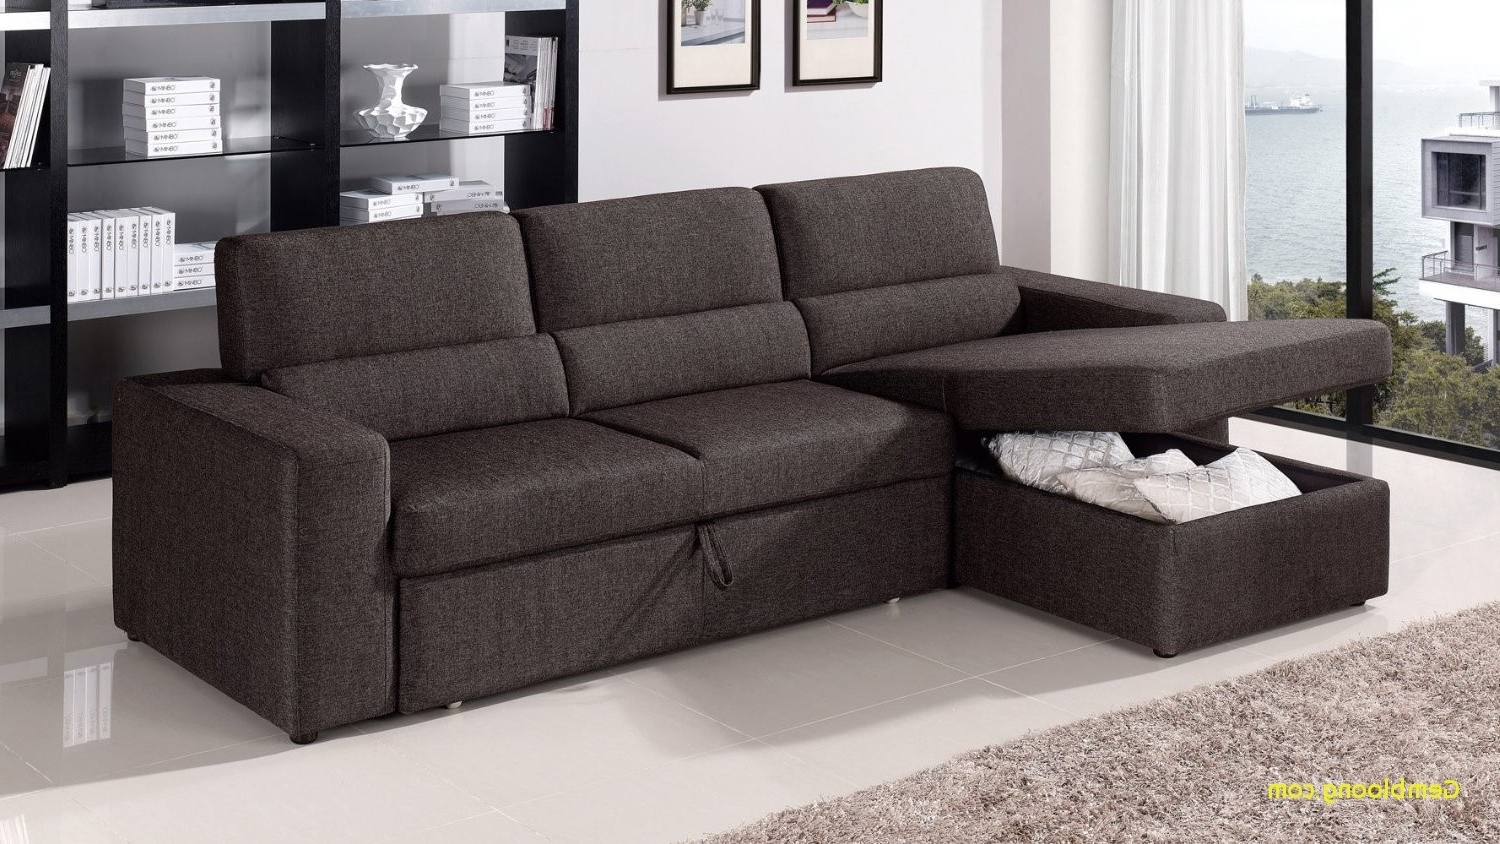 2018 Sleeper Sofas With Storage Chaise With Sectional Sofa With Storage Chaise Awesome Funiture Sleeper Sofa (View 1 of 15)